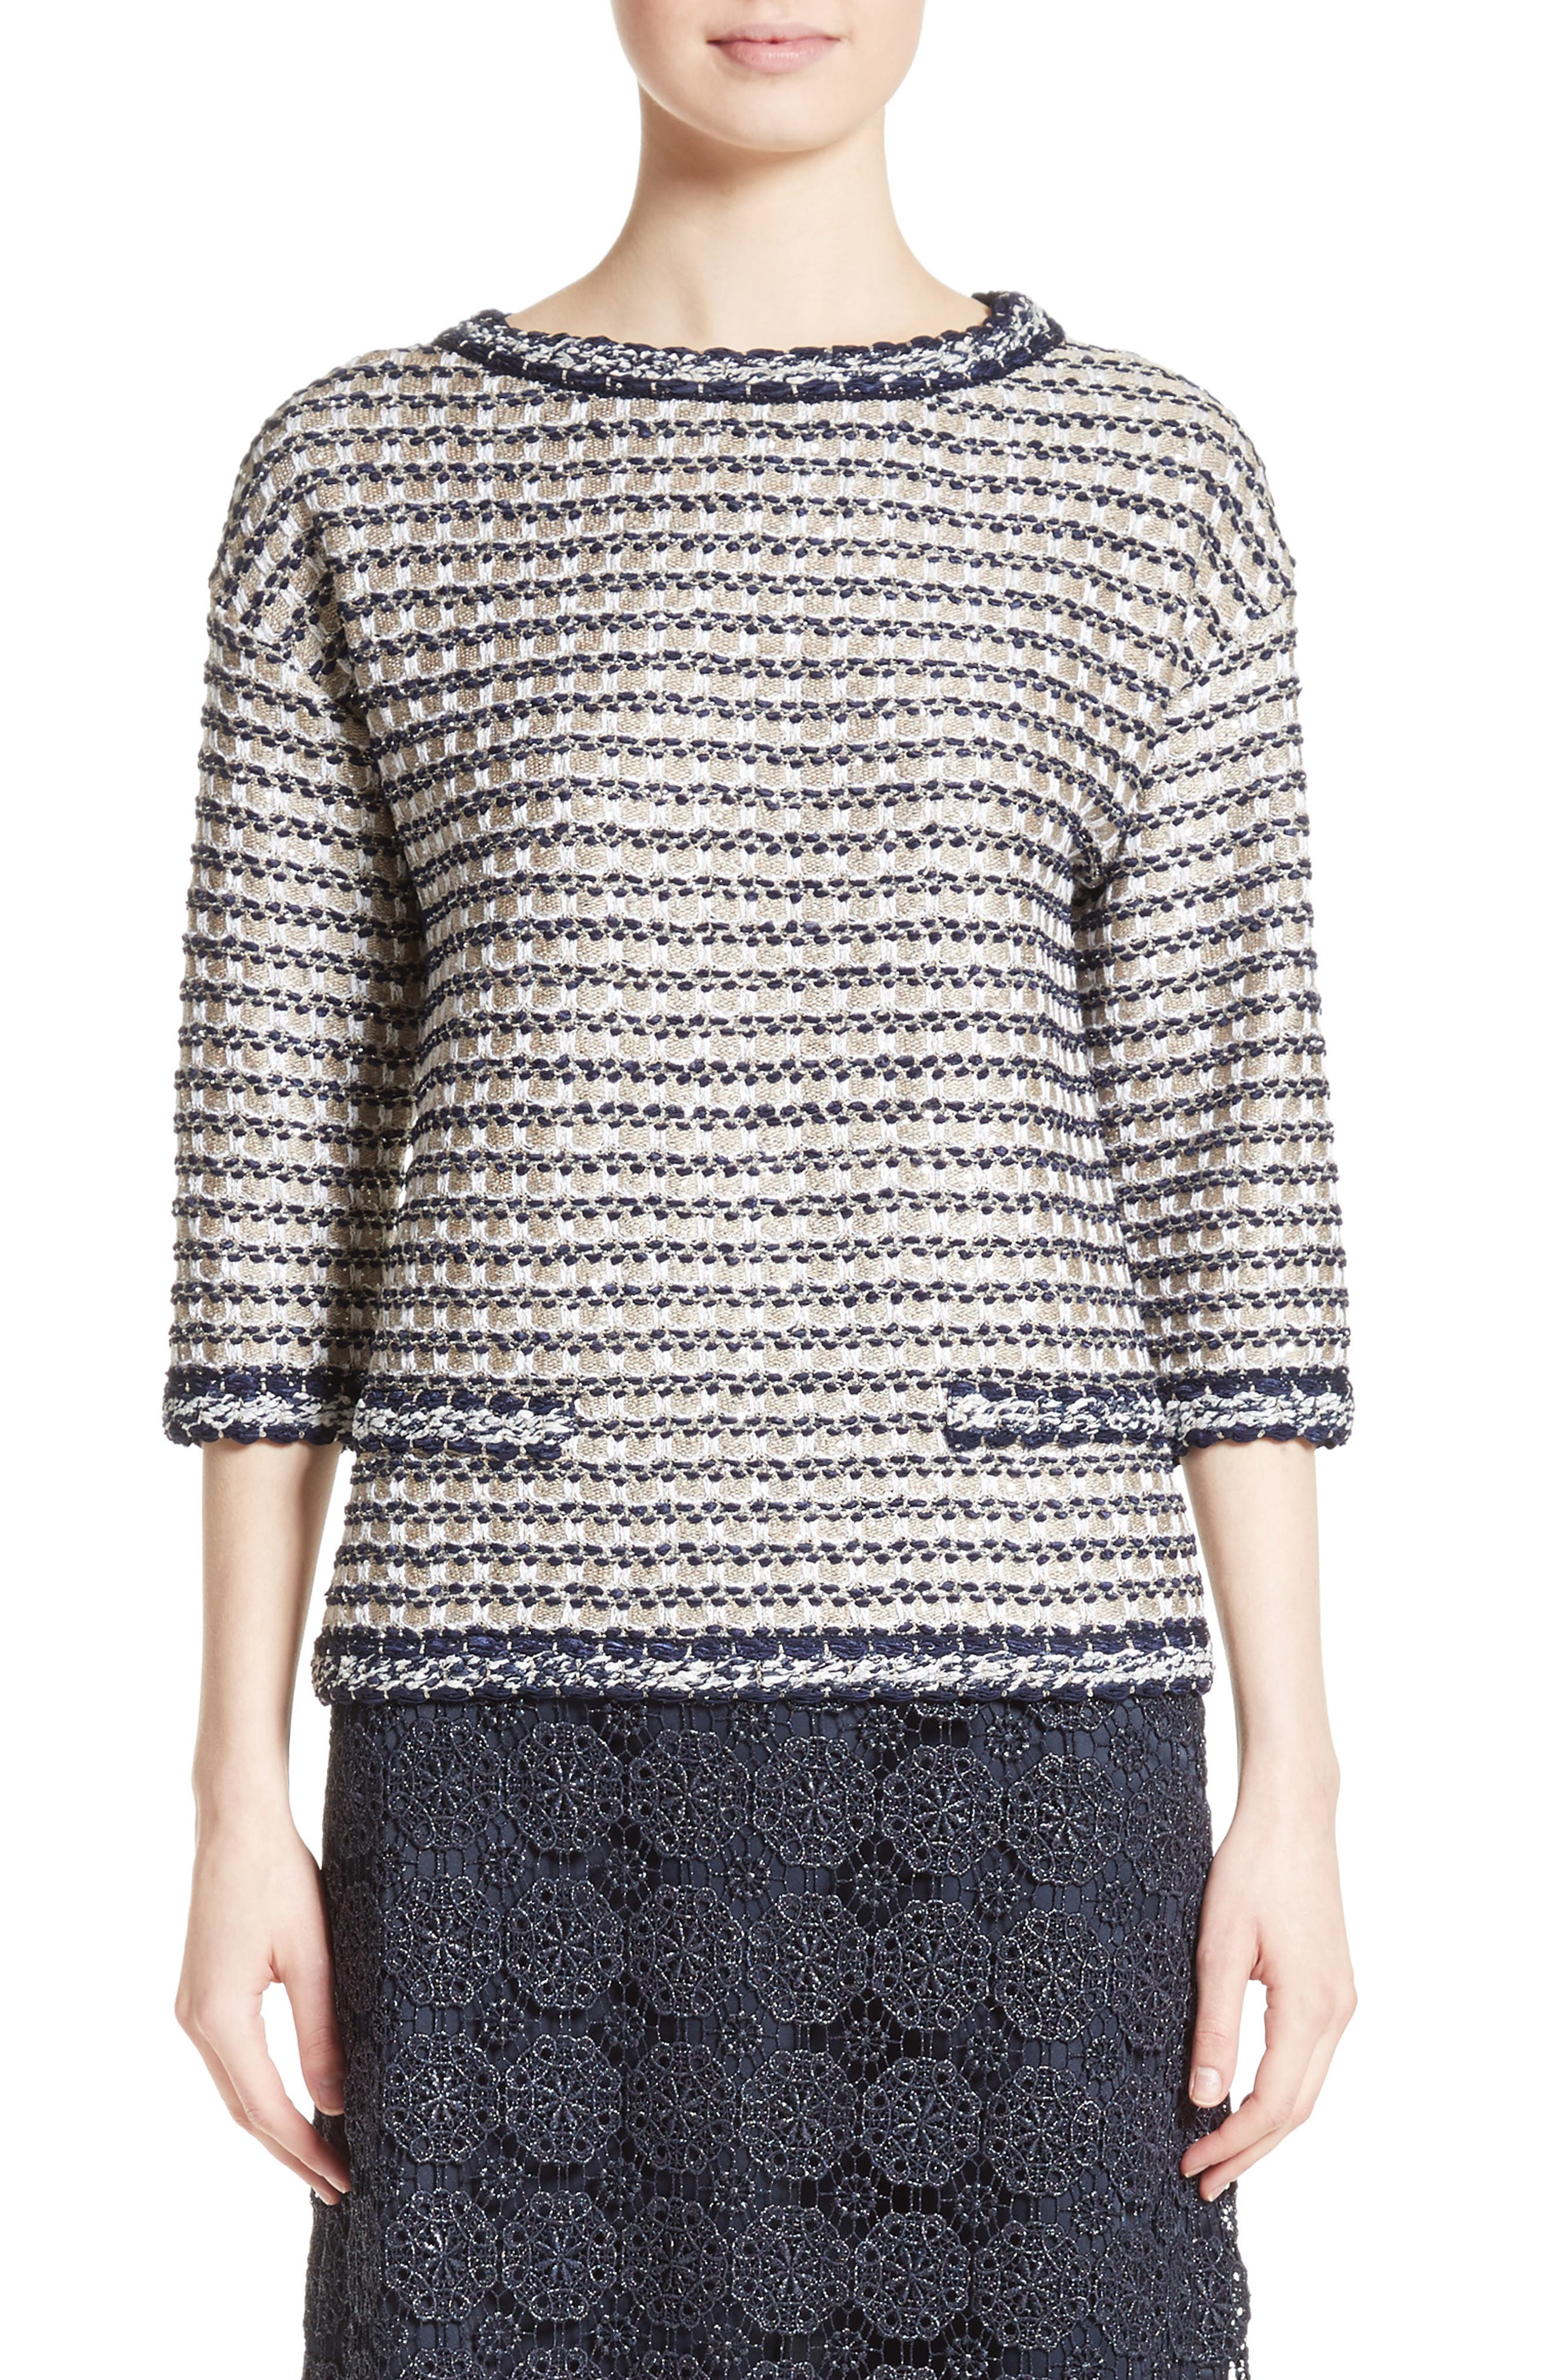 St. John Collection Vany Tweed Knit Top